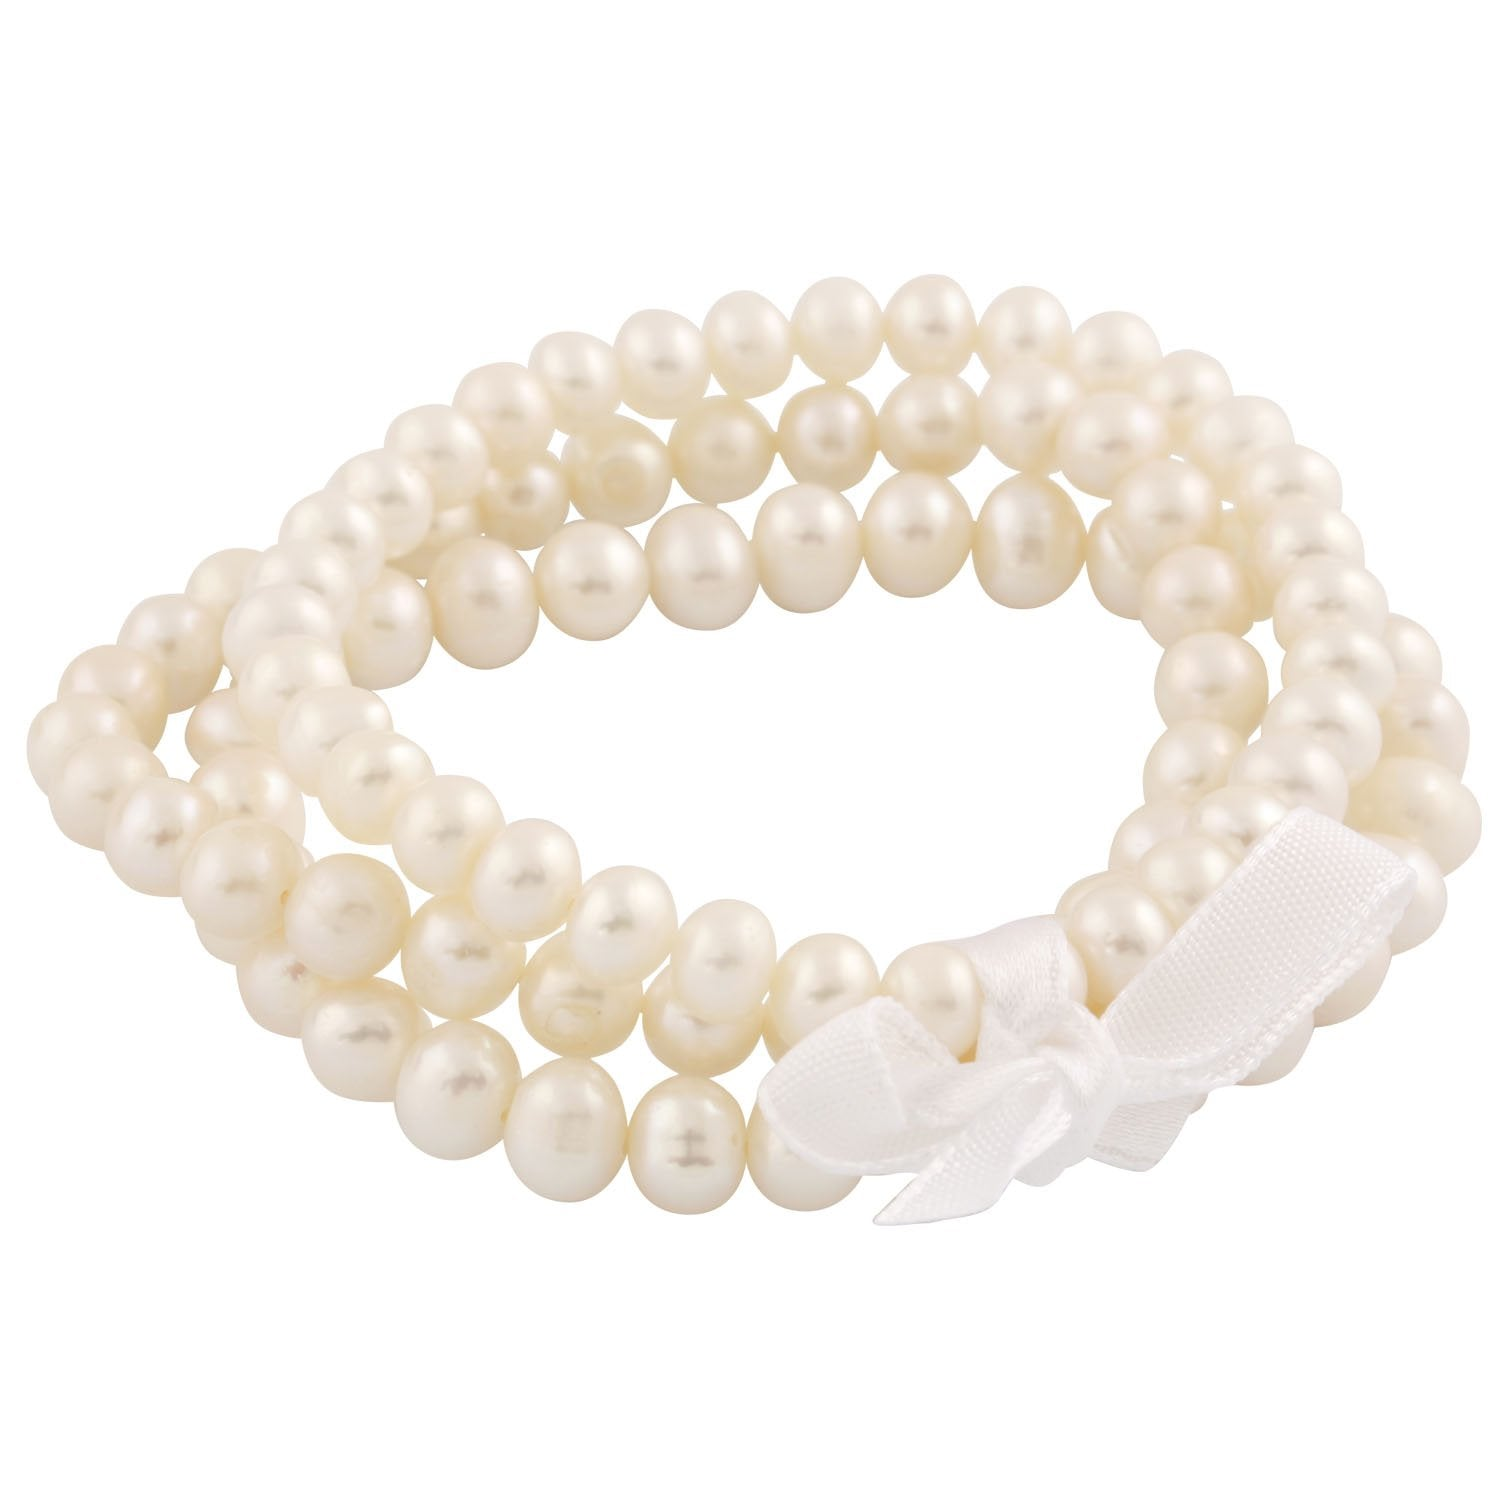 Trio of Beautiful Freshwater Pearl Bracelets